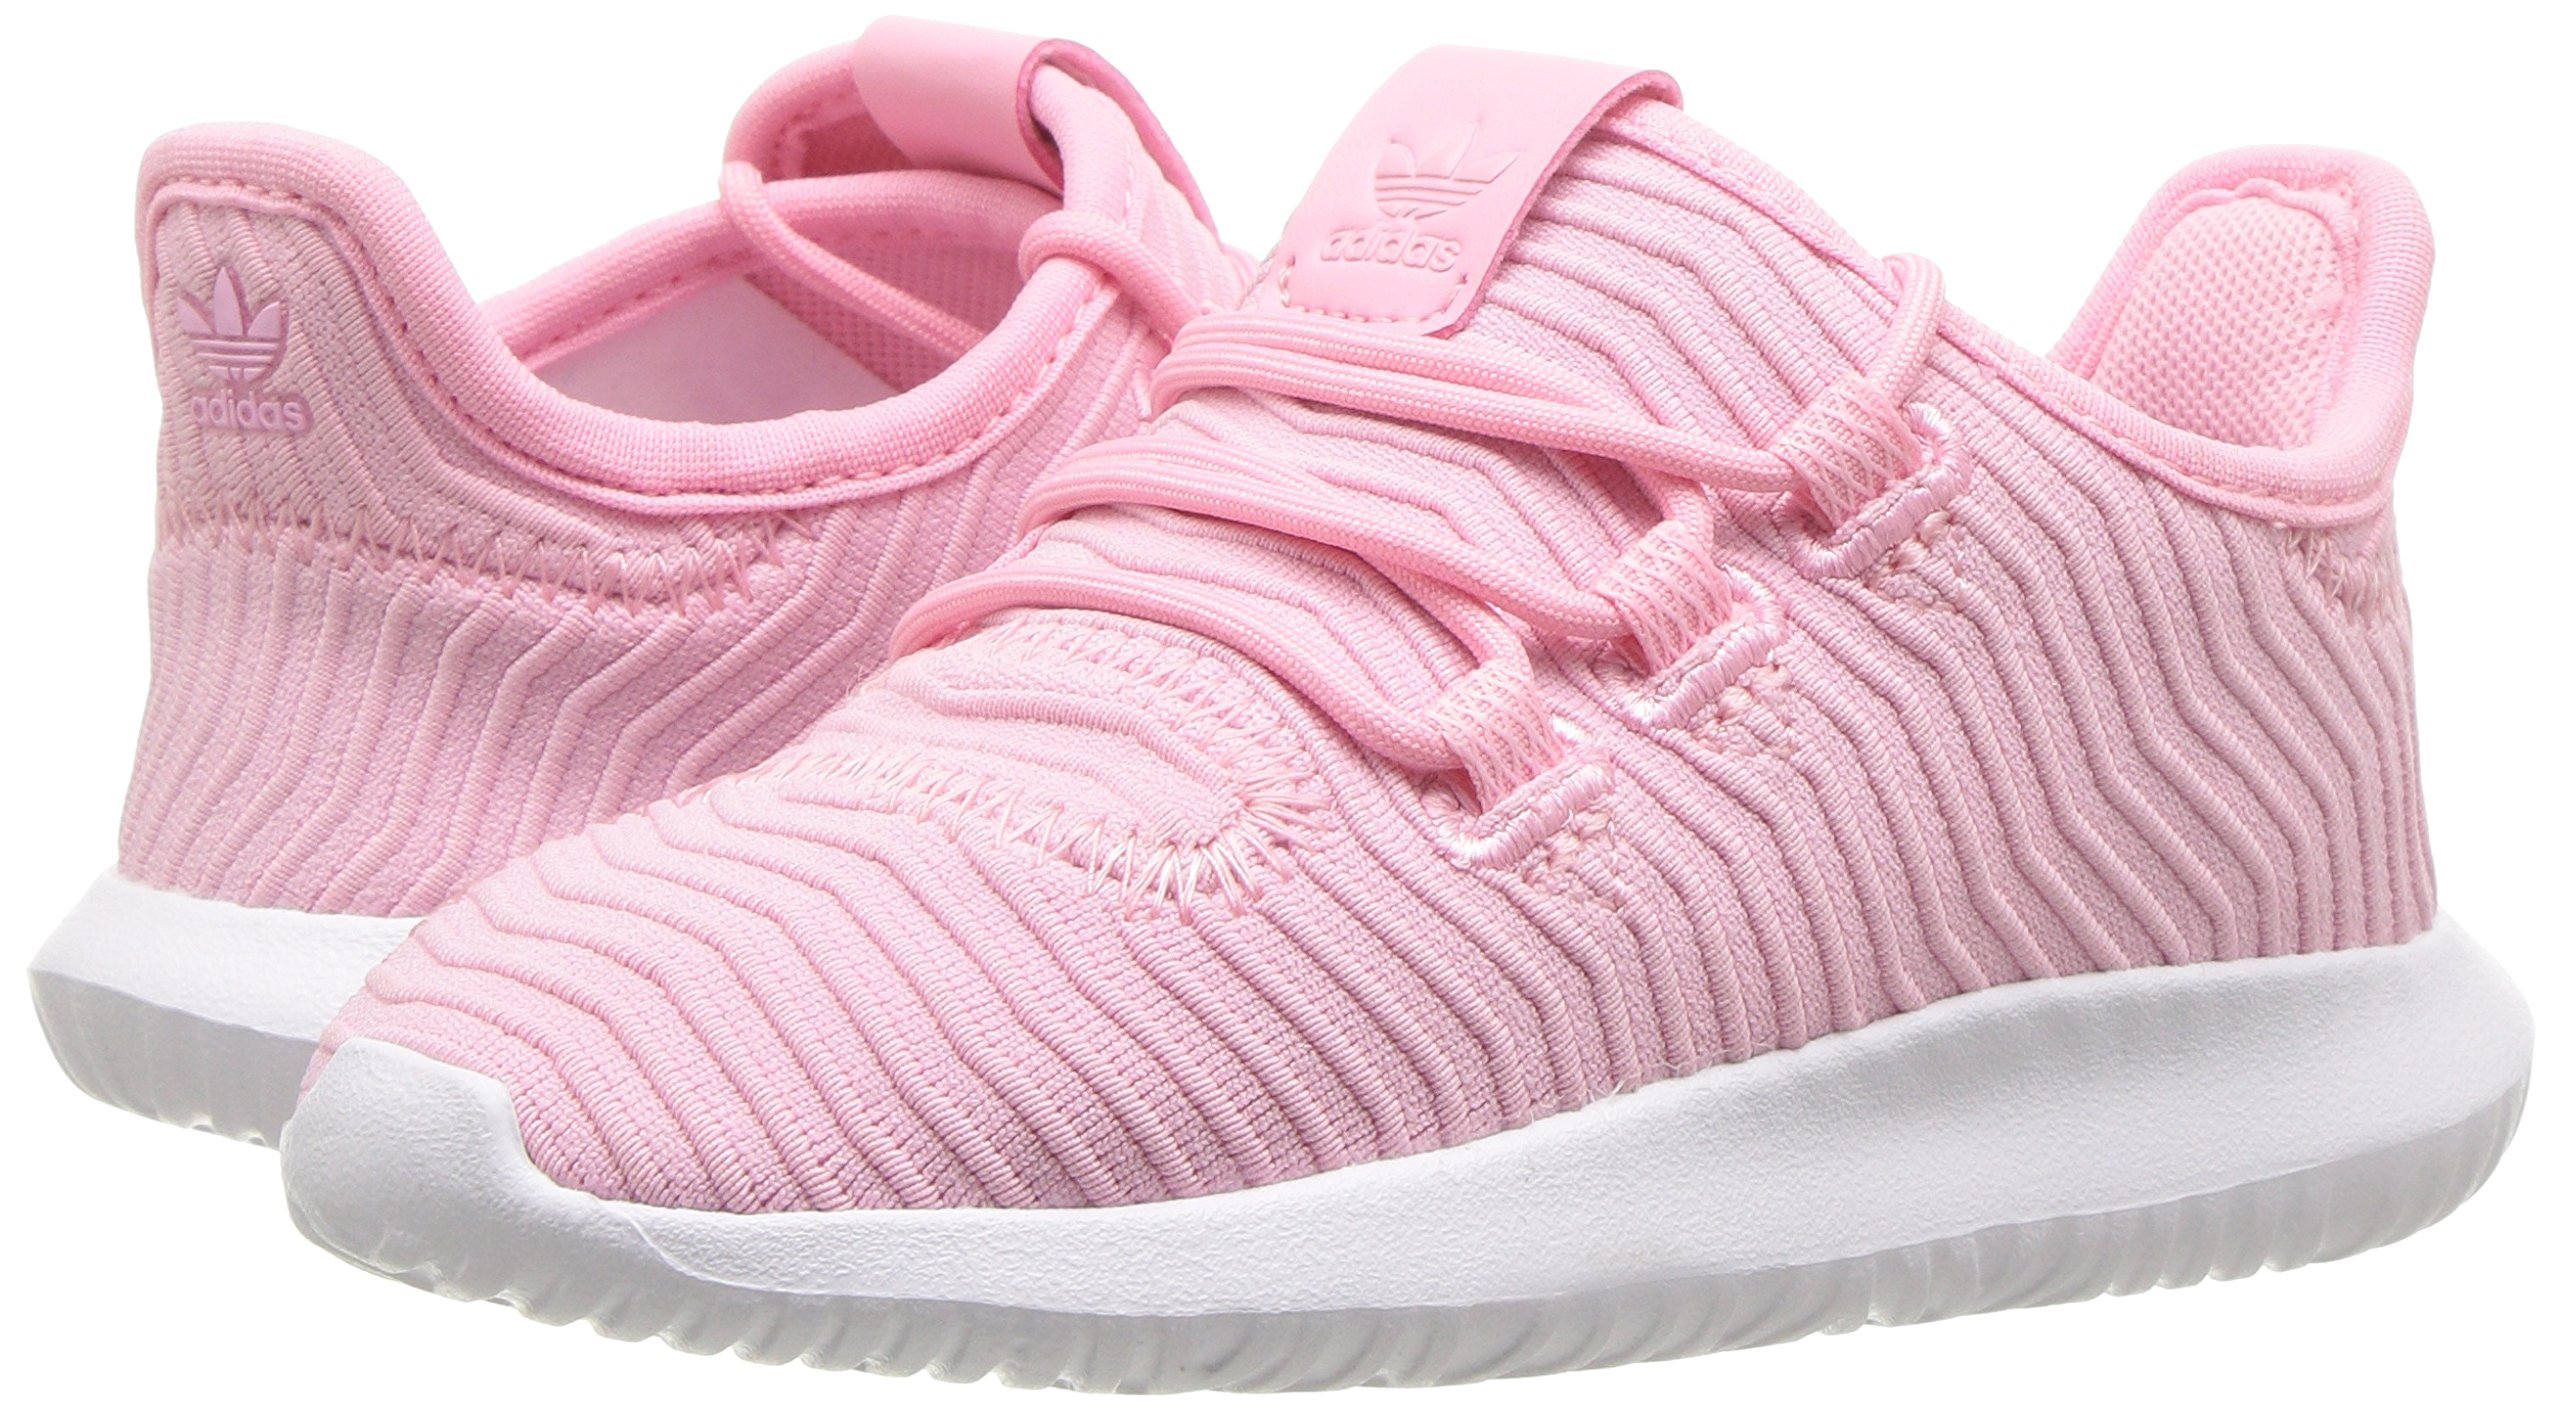 adidas Originals Baby Tubular Shadow Light Pink/White, 7K M US Toddler by adidas Originals (Image #5)